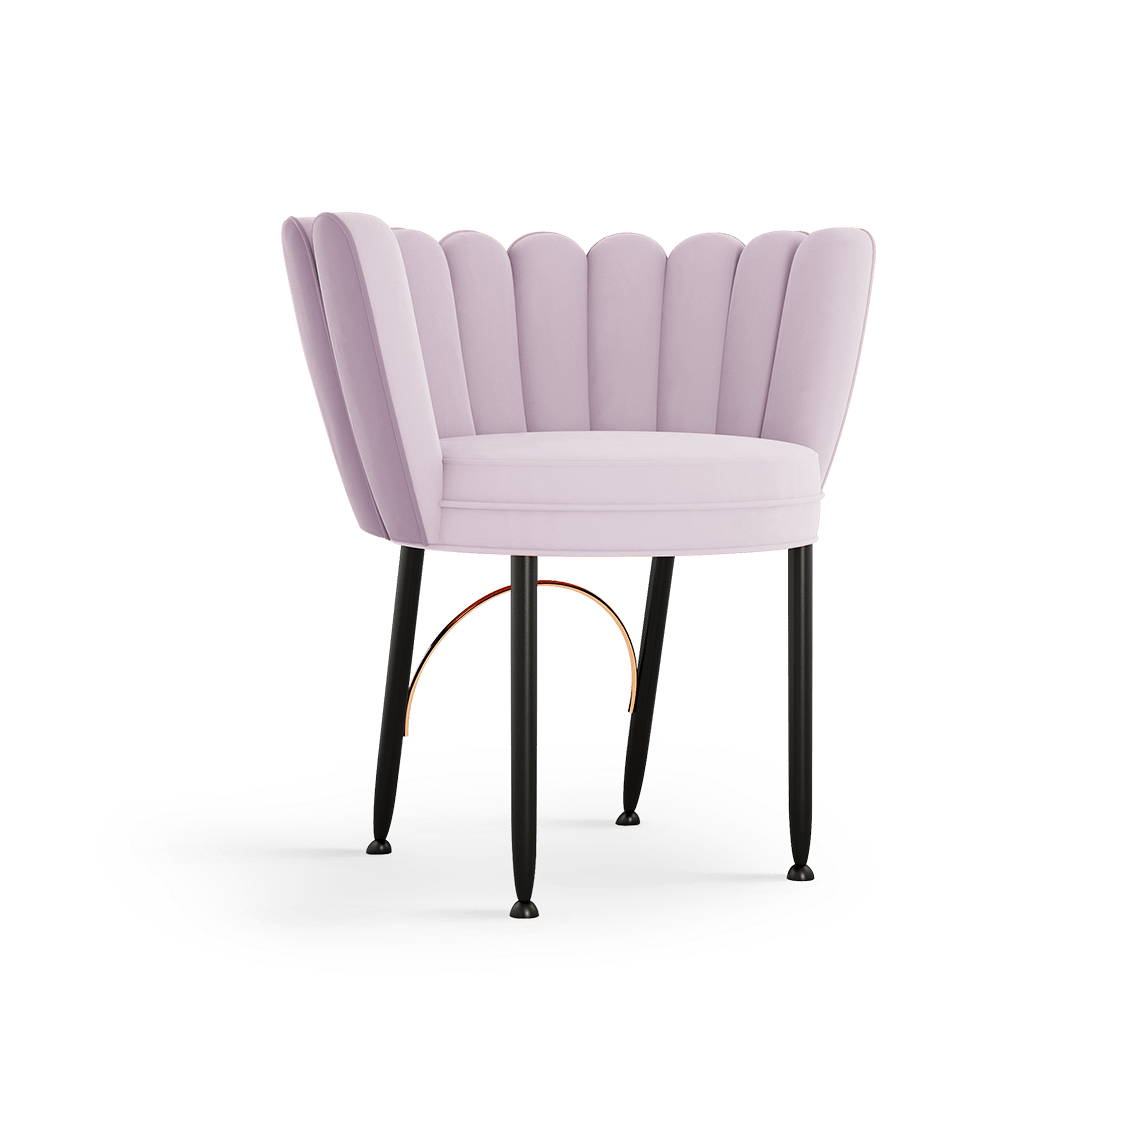 Angel Mid-Century Dining Chair in cassis cotton velvet